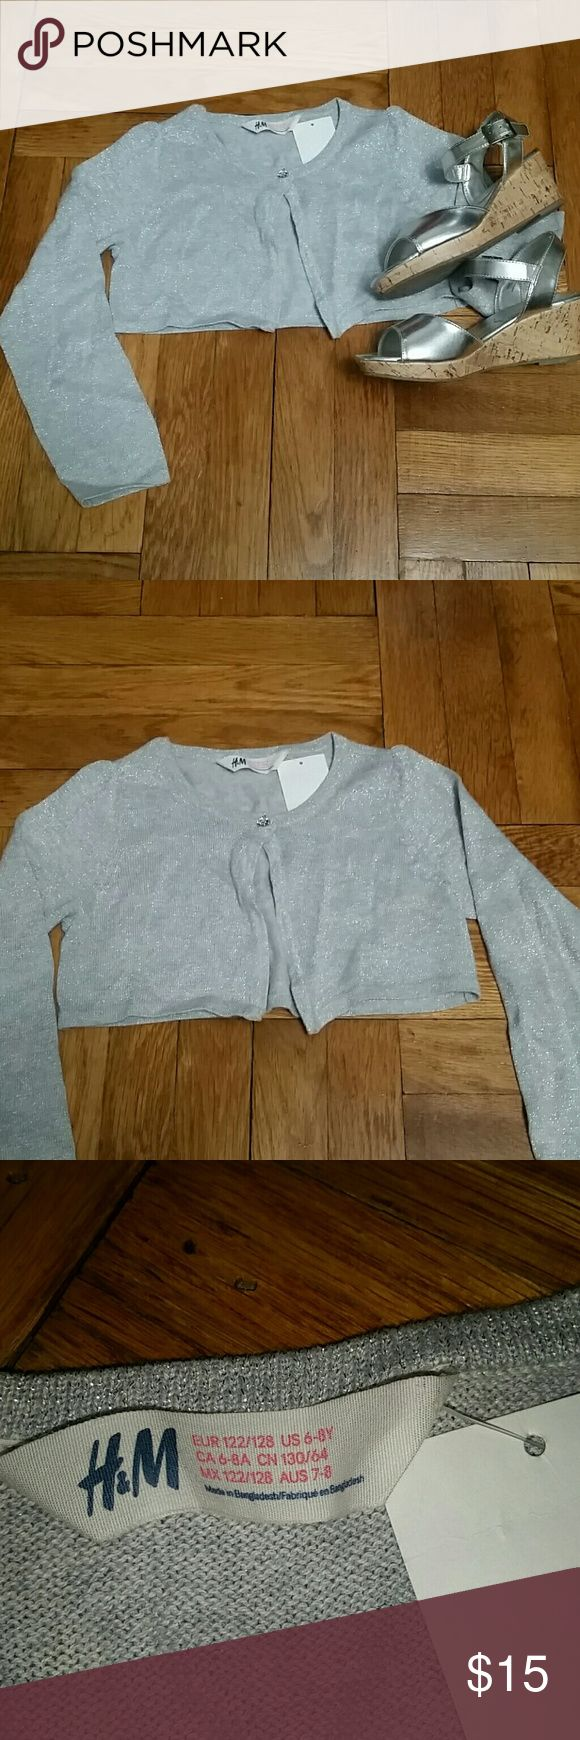 H&M Silver Cardigan (NWT) H&M Long sleeve Silver Cardigan with one jeweled button as closure. NEW WITH TAG! Size 6-8Y H&M Shirts & Tops